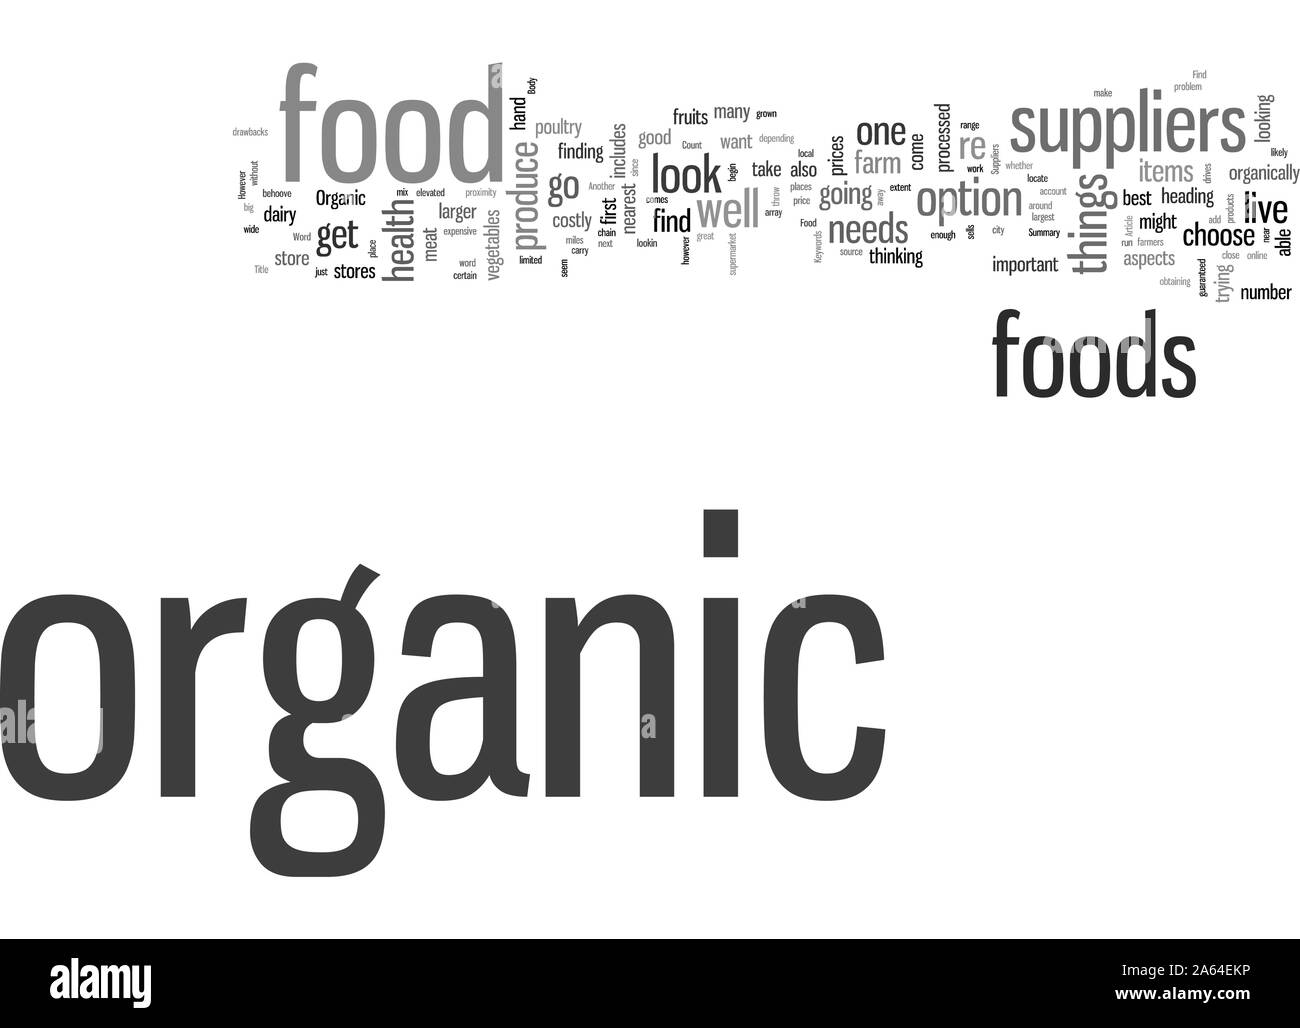 How To Find Organic Food Suppliers Stock Vector